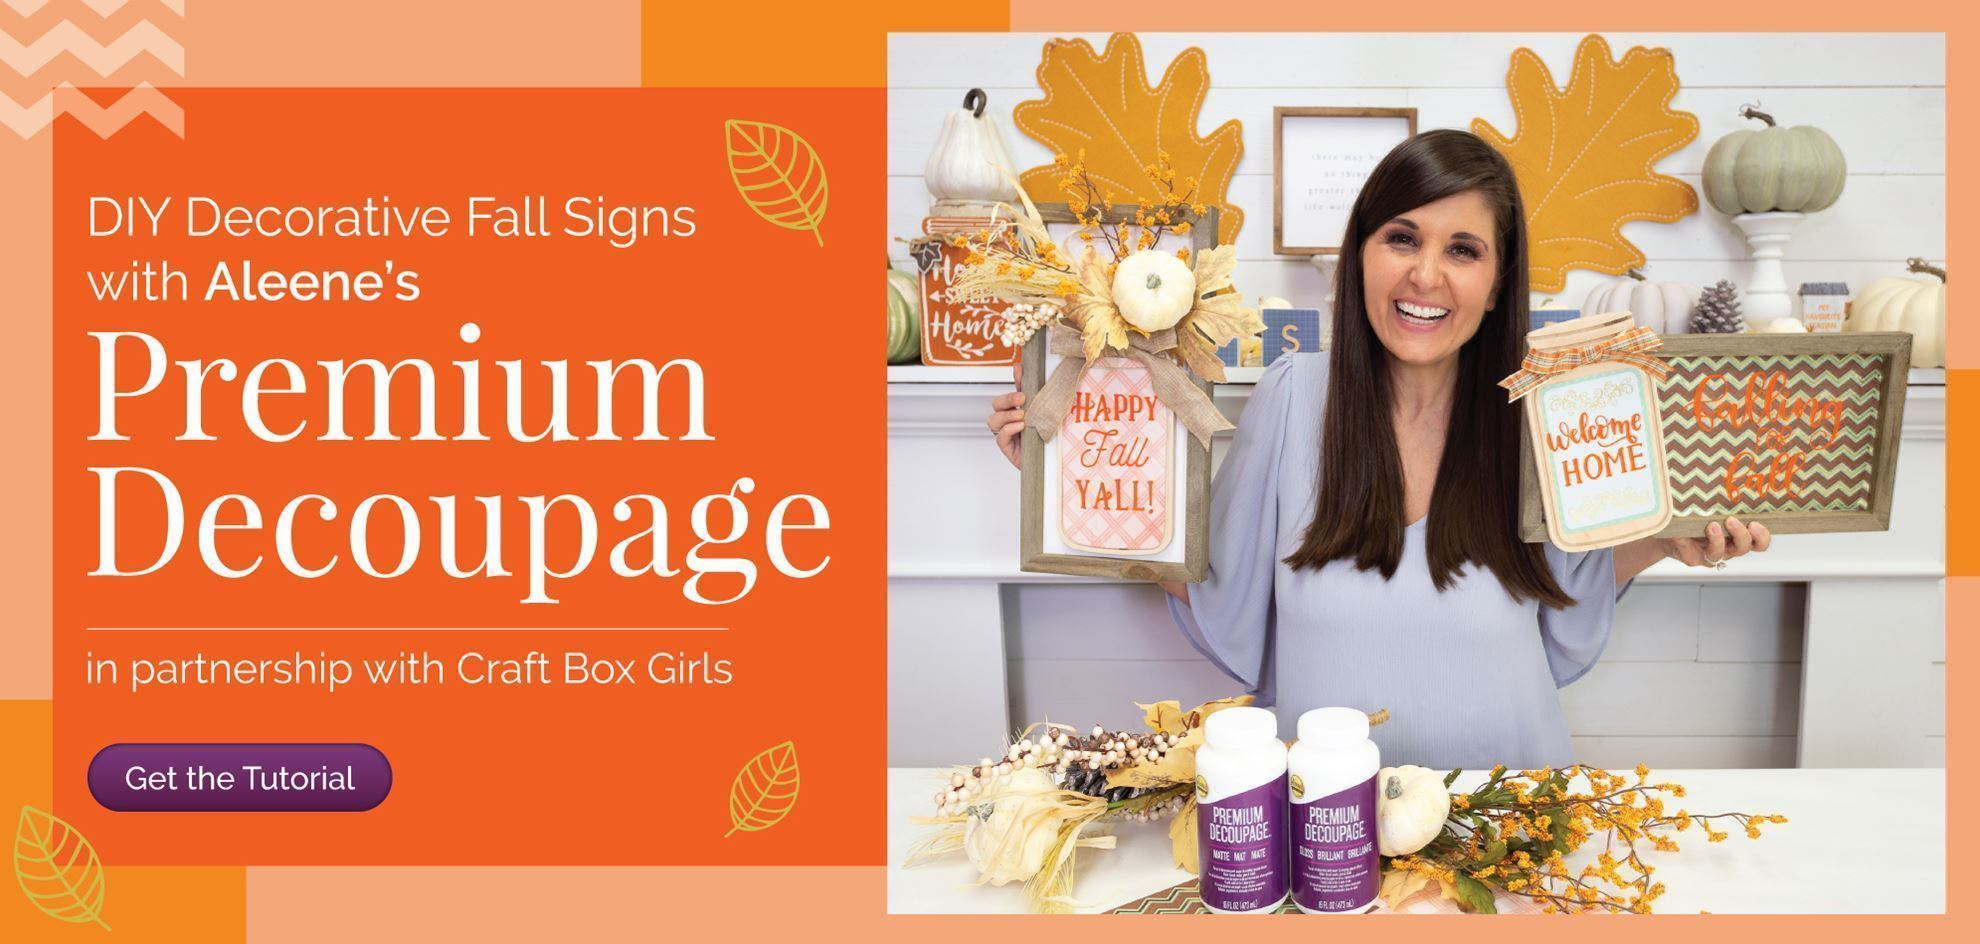 DIY Decorative Fall Signs